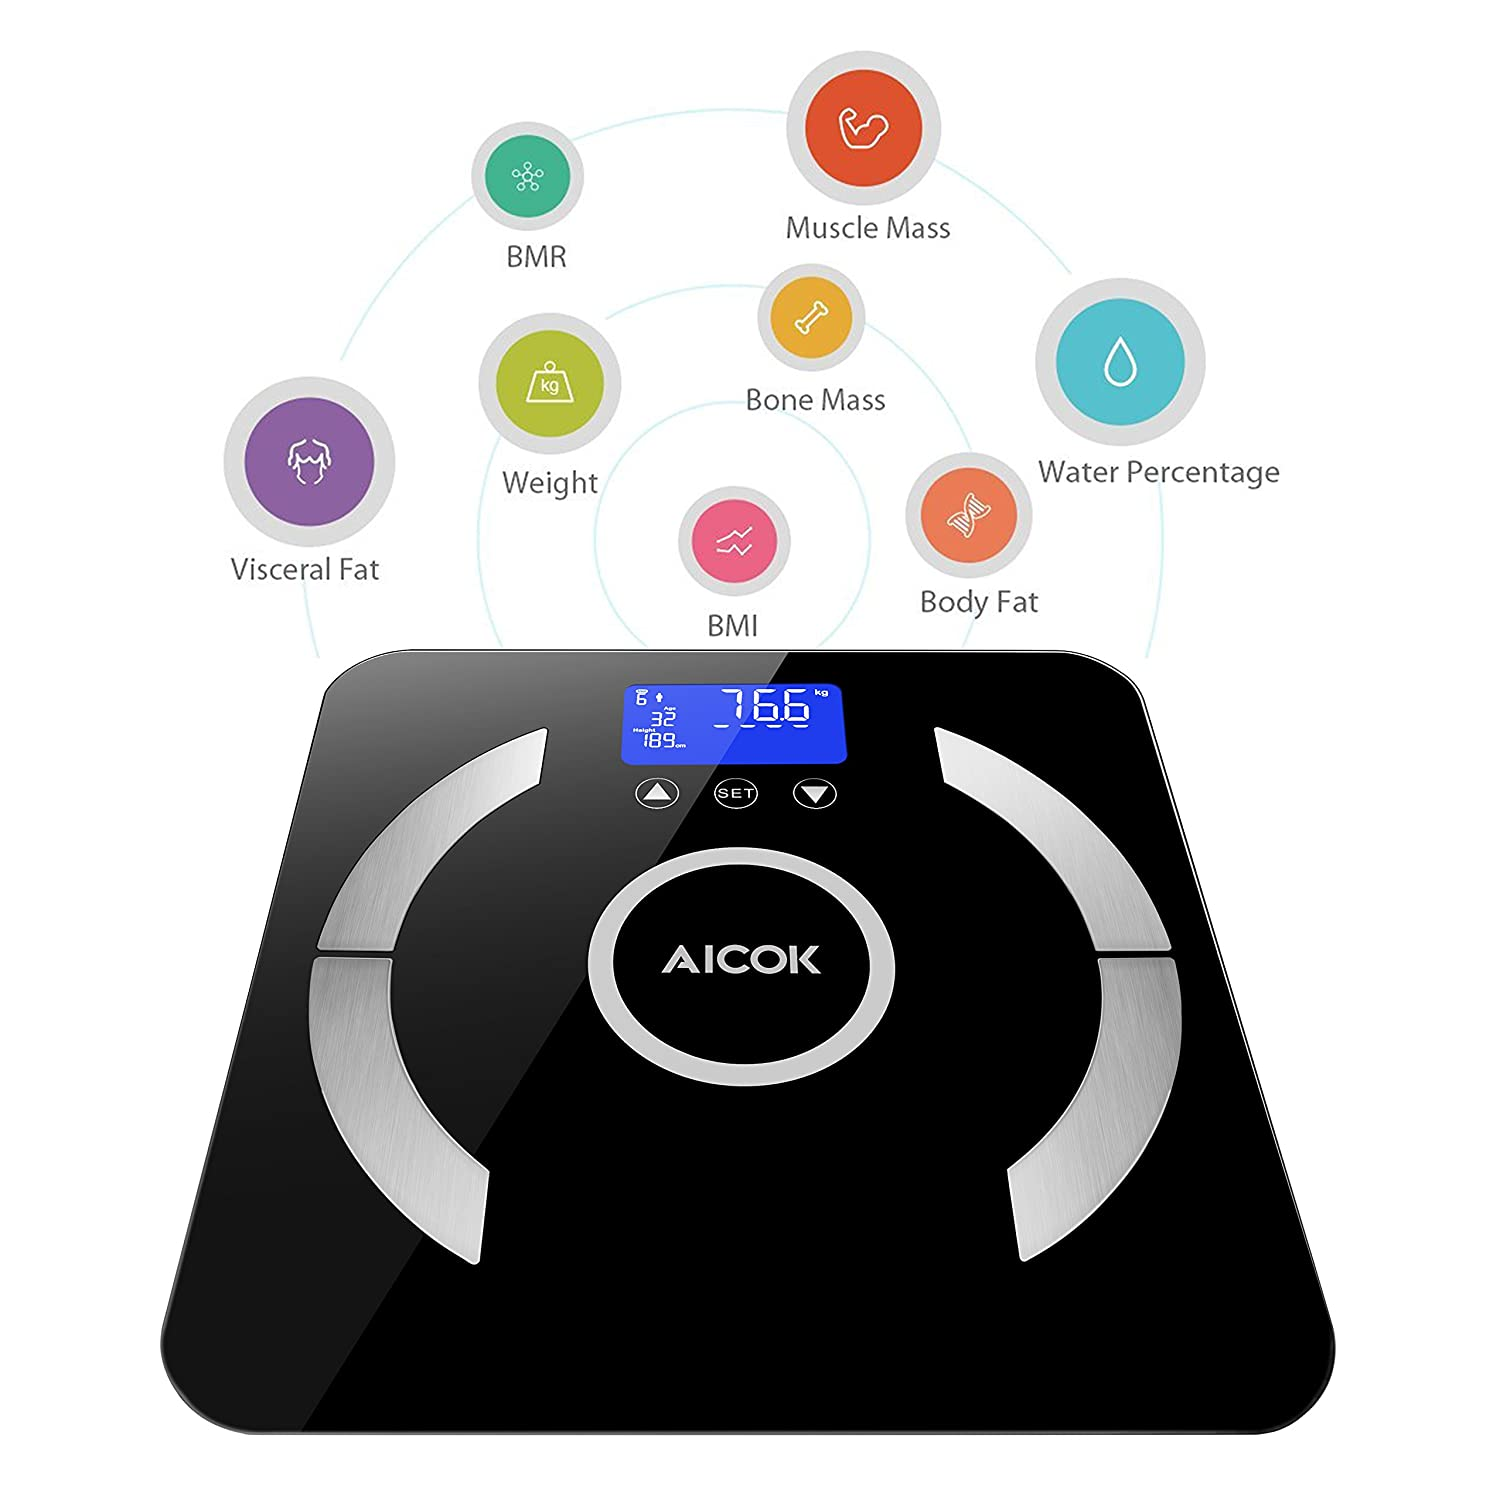 Aicok Body Fat Scale, Digital Bathroom Weight Scale with 8 Body Composition Analysis, Step-On Technology, Backlight Display, BMI, Body Fat, Muscle, ...